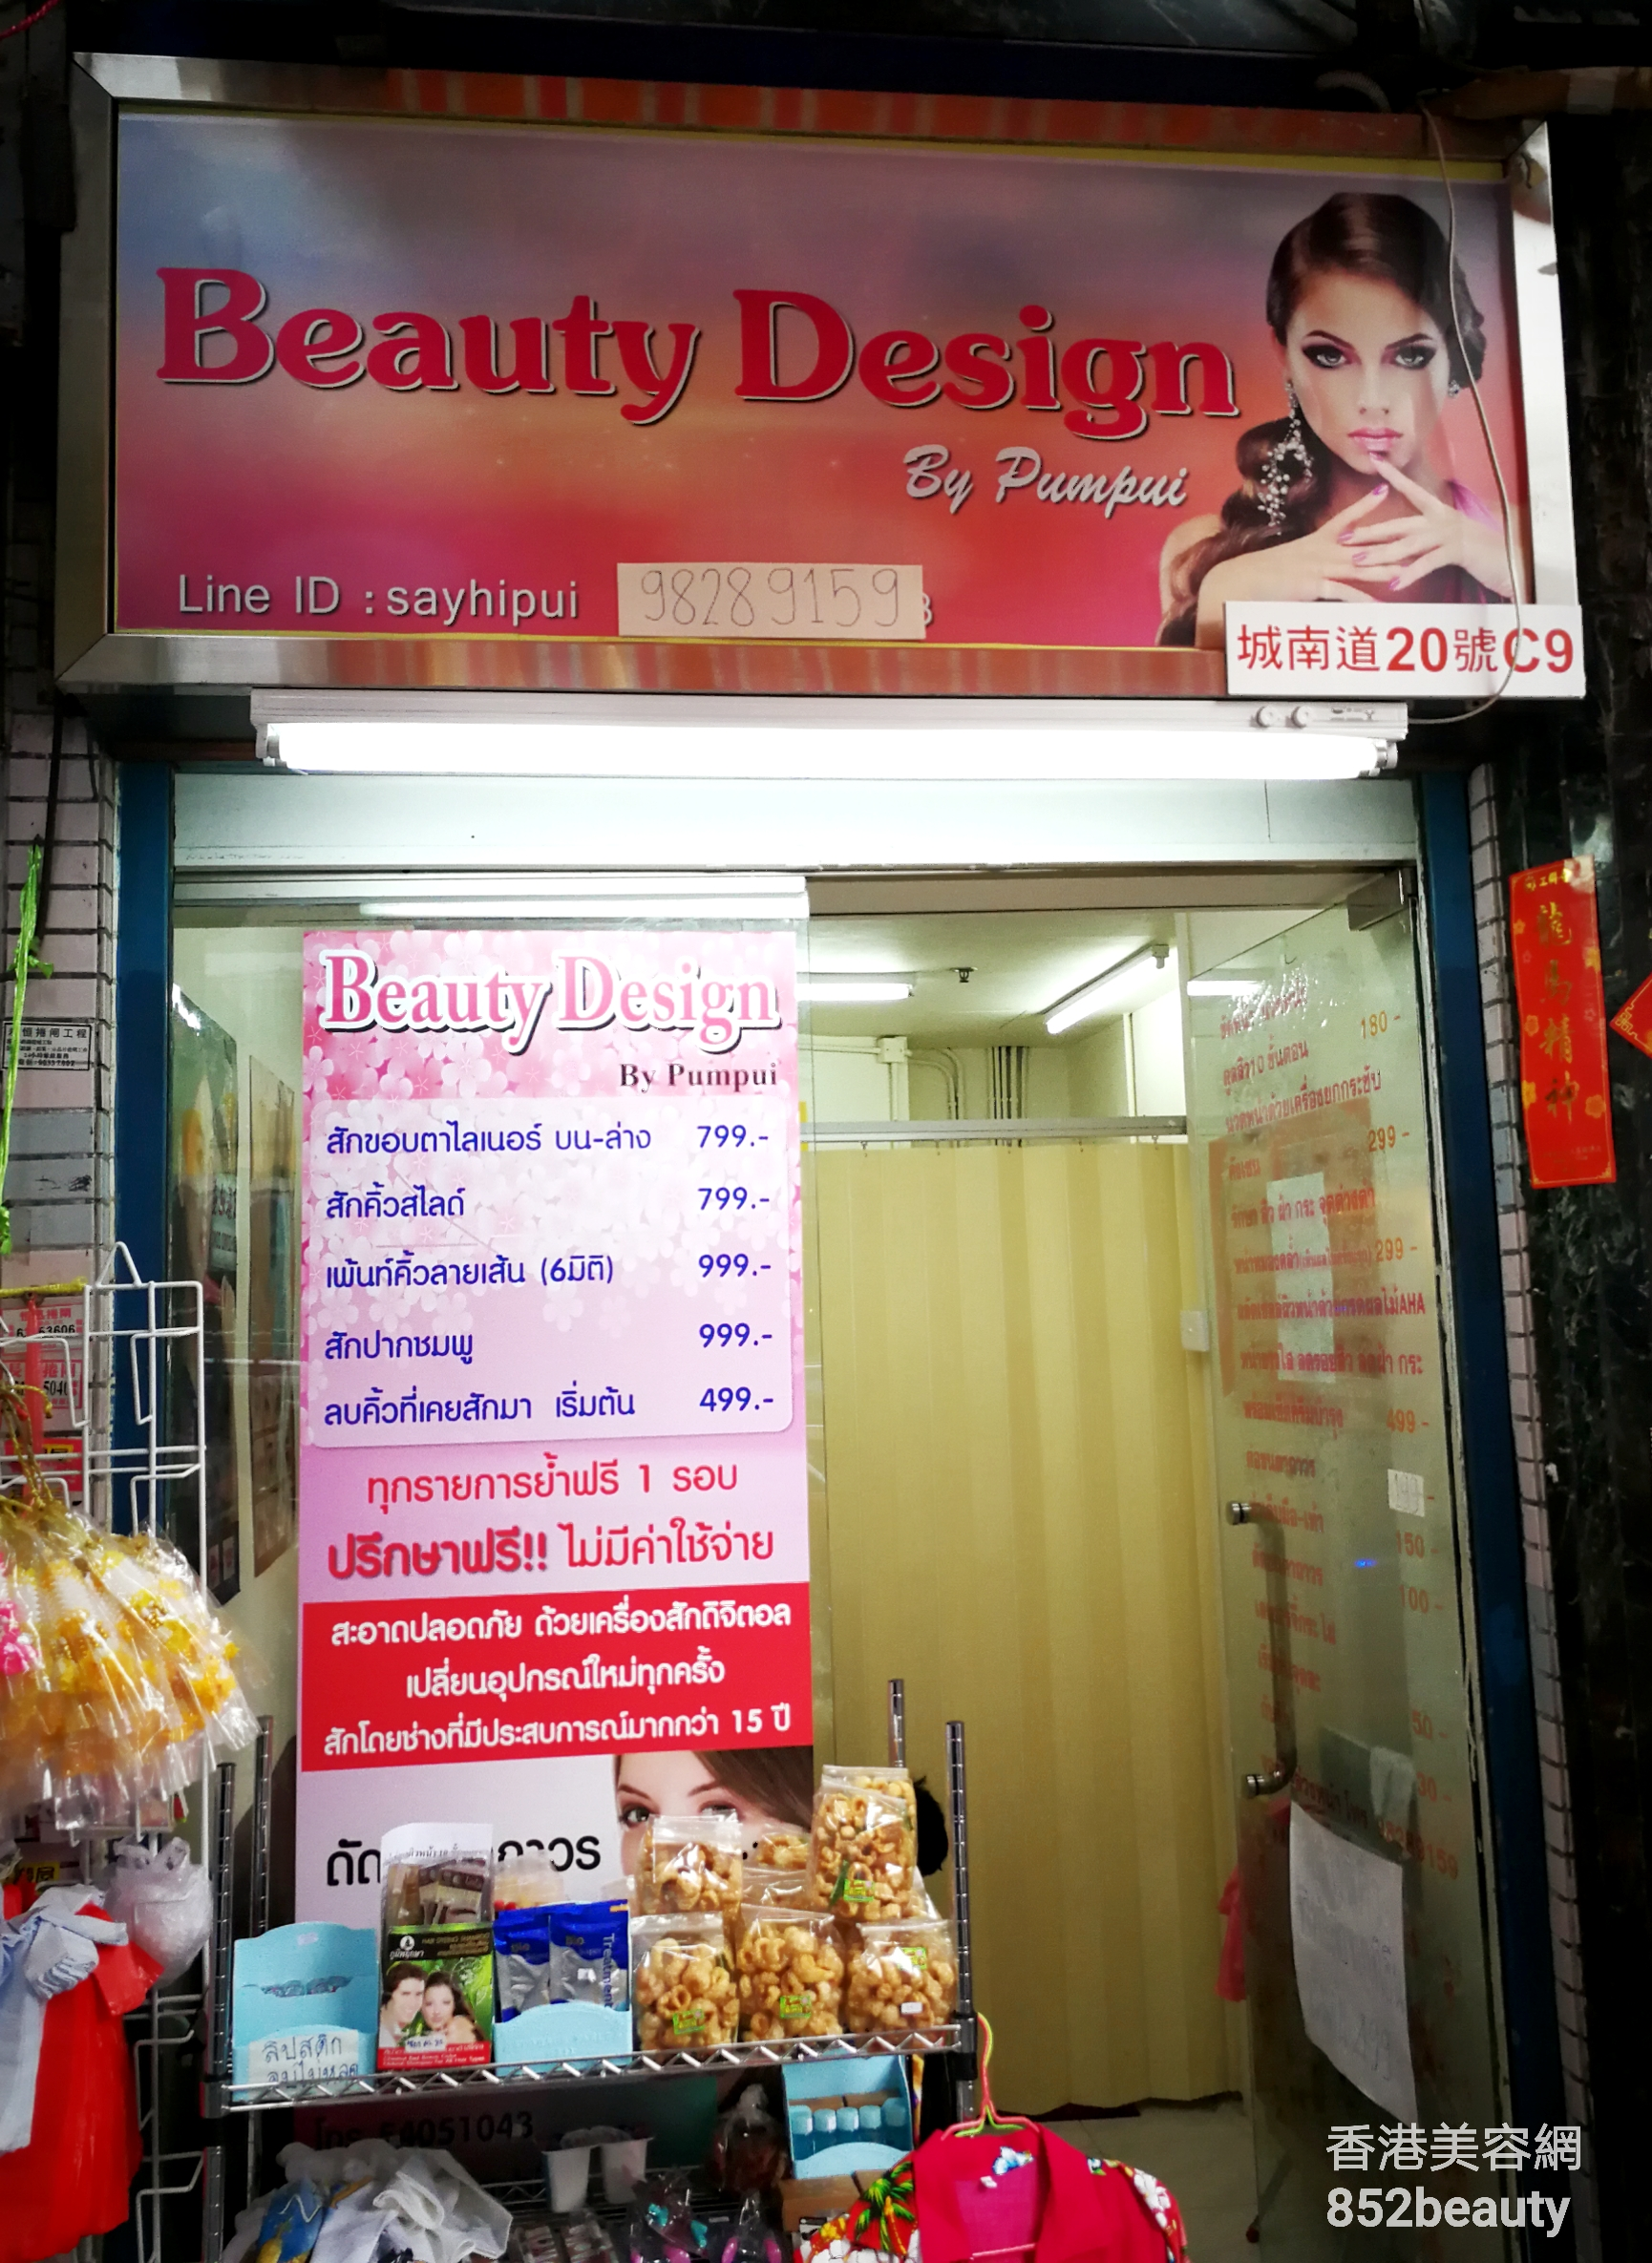 香港美容網 Hong Kong Beauty Salon 美容院 / 美容師: Beauty Design